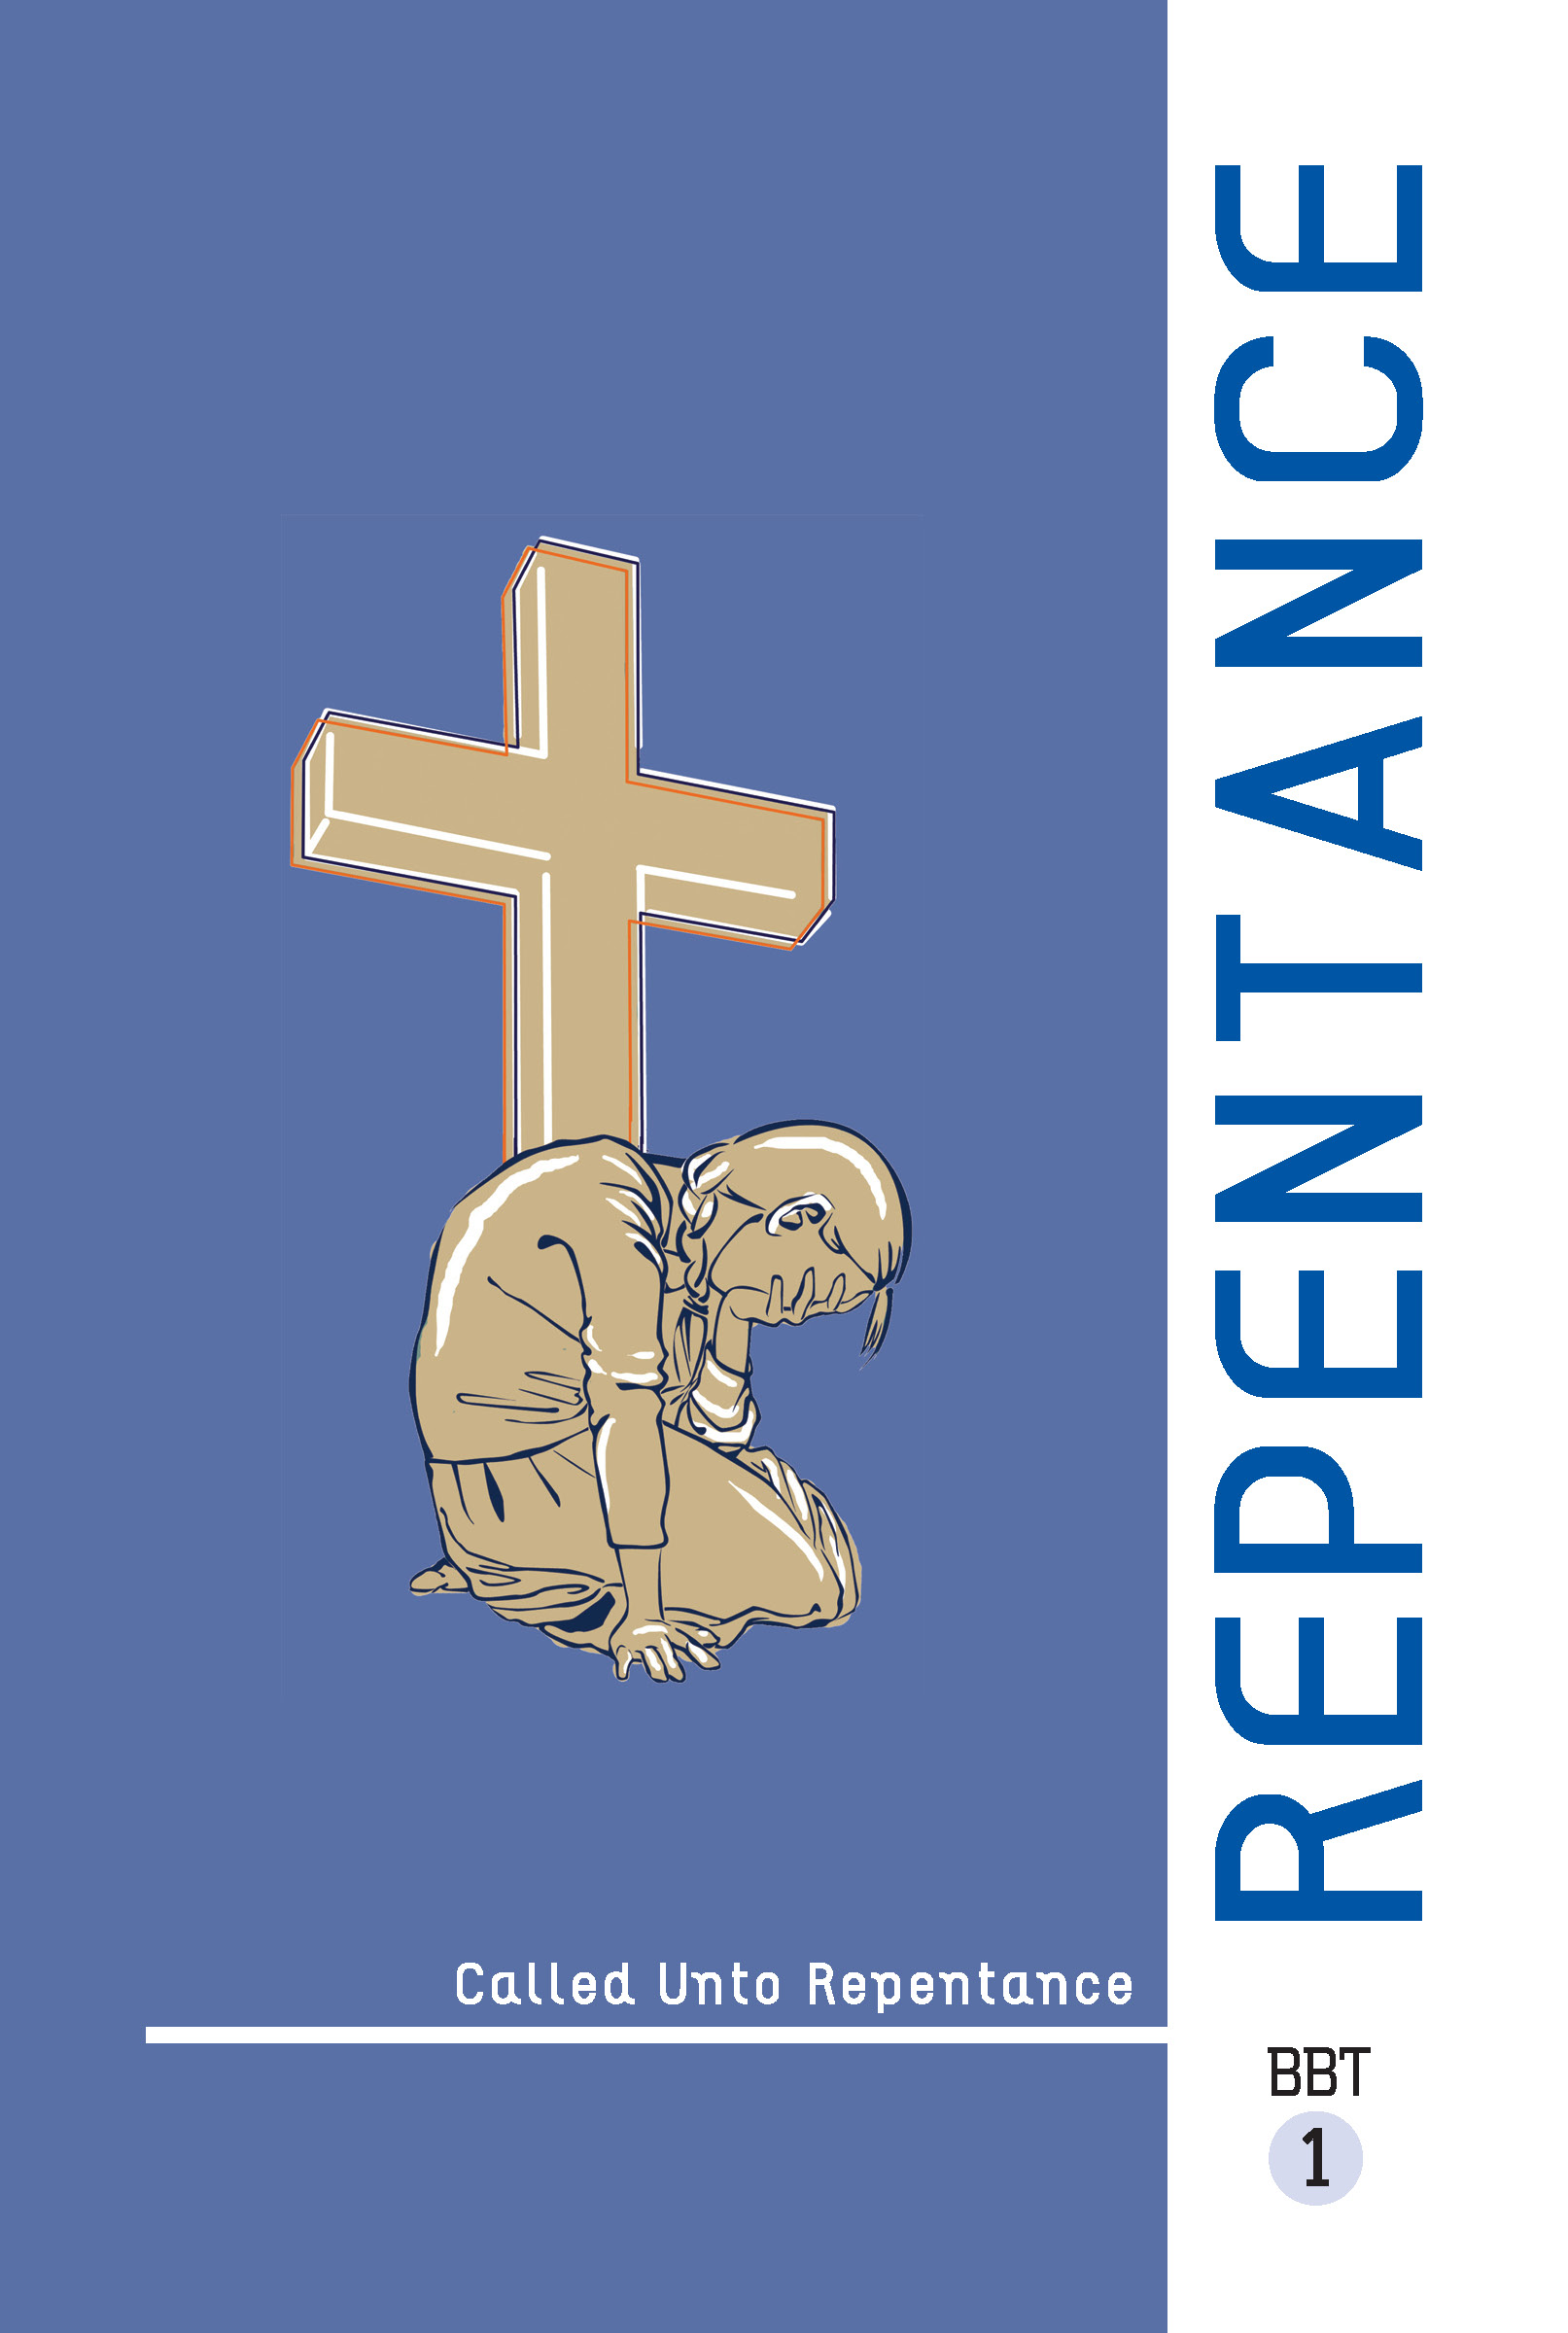 Lesson 1 - REPENTANCE: Called Unto Repentance